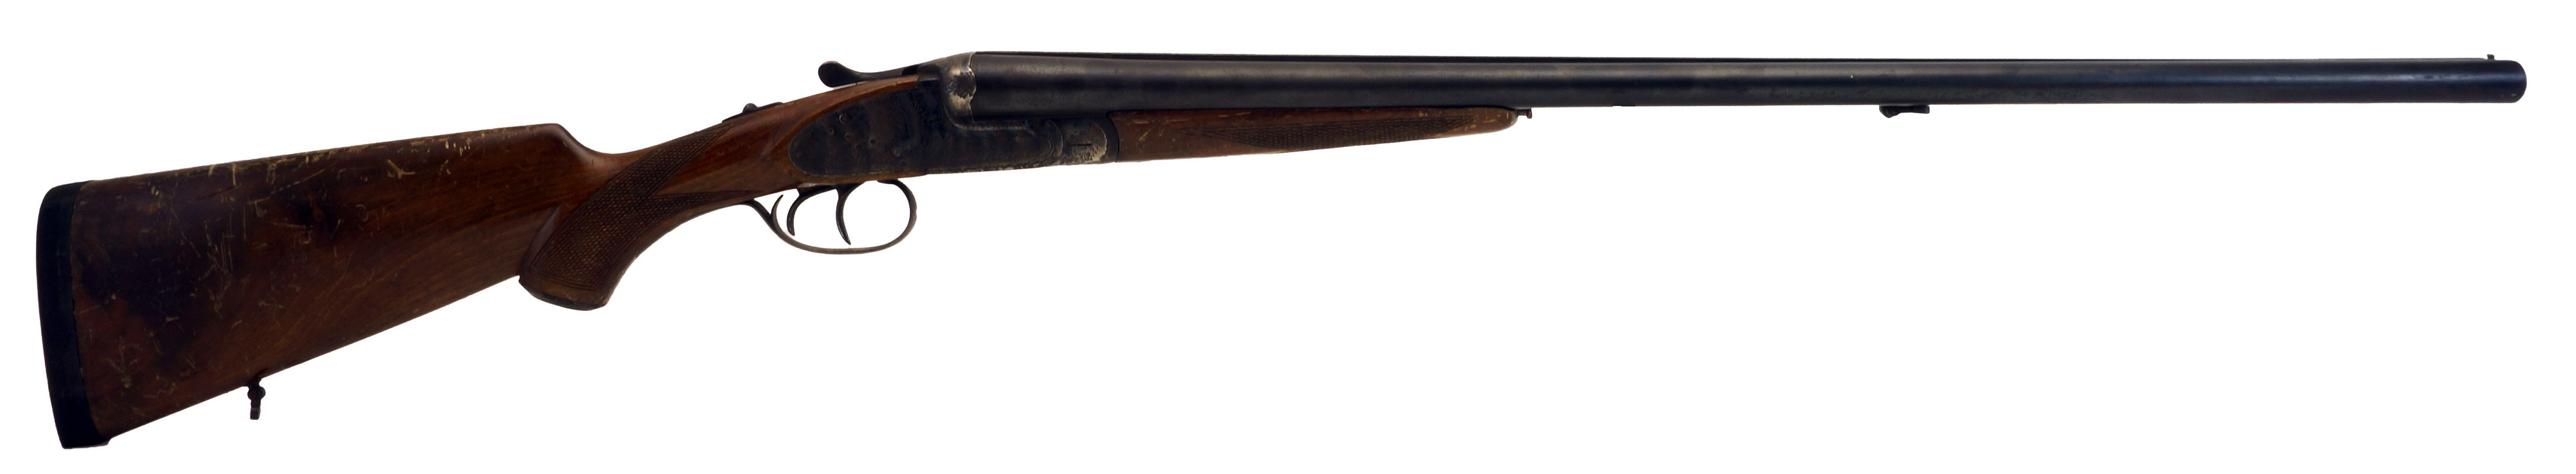 "Hermanos Pioneer, 12GA, 28"" Barrel"